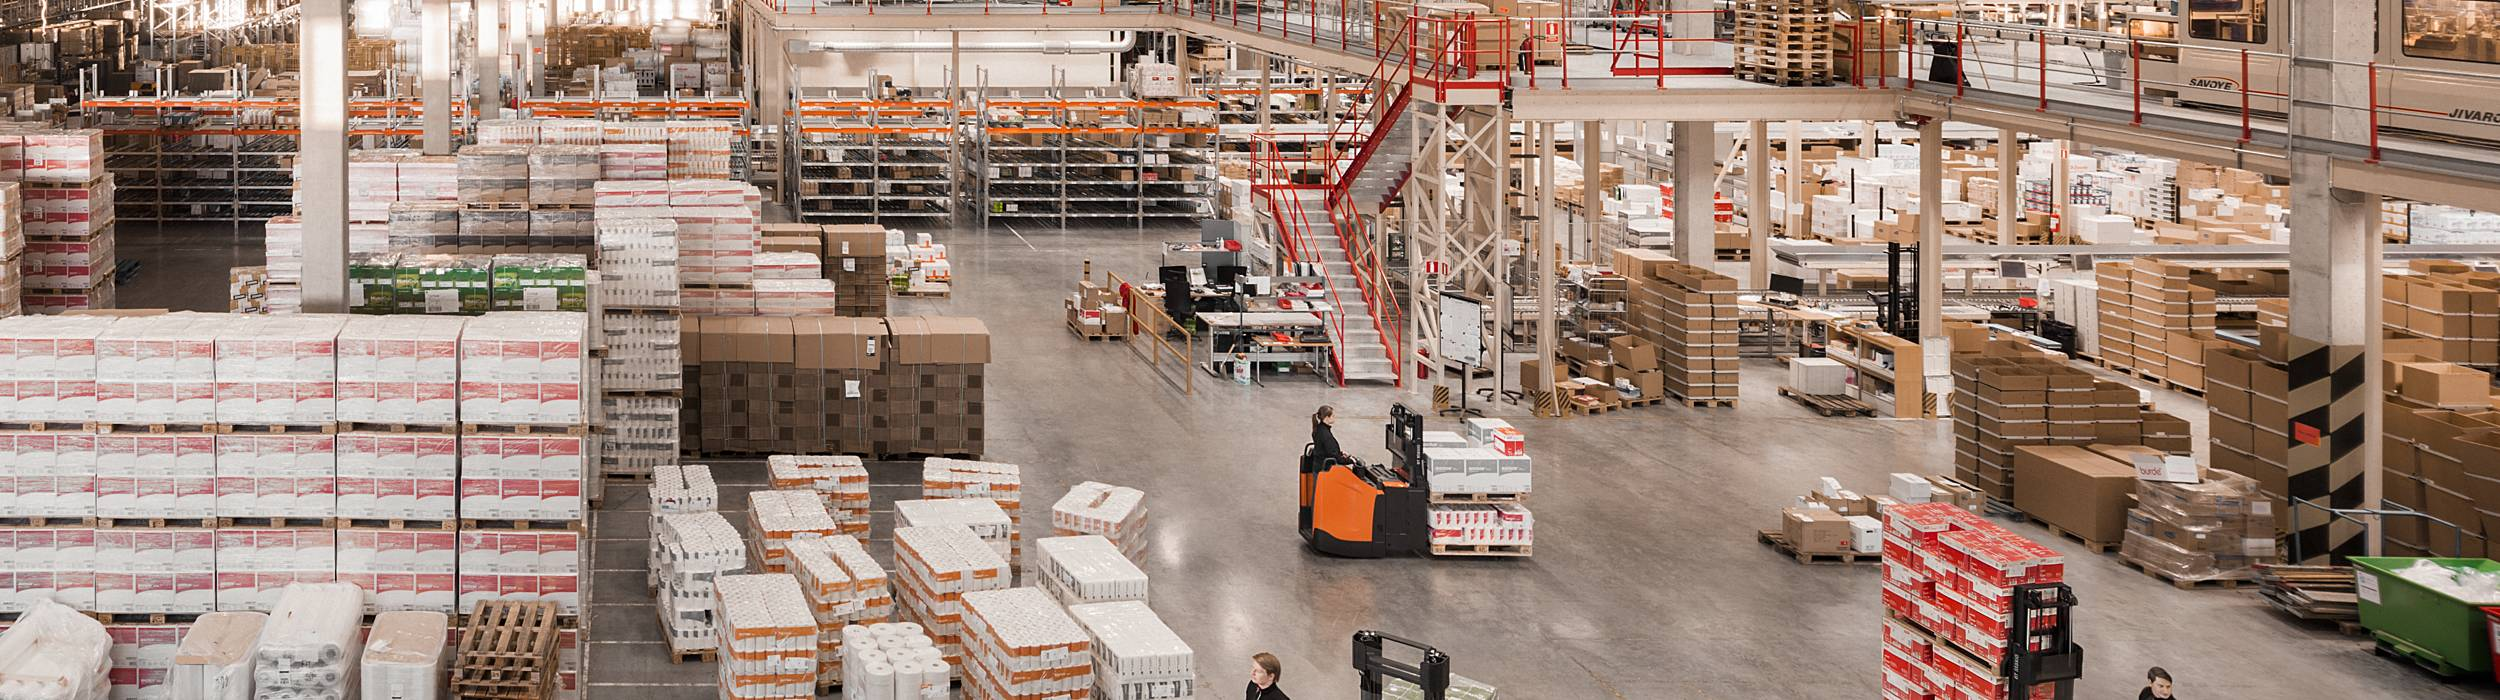 BT Staxio stacker trucks used in retail and warehouse industry